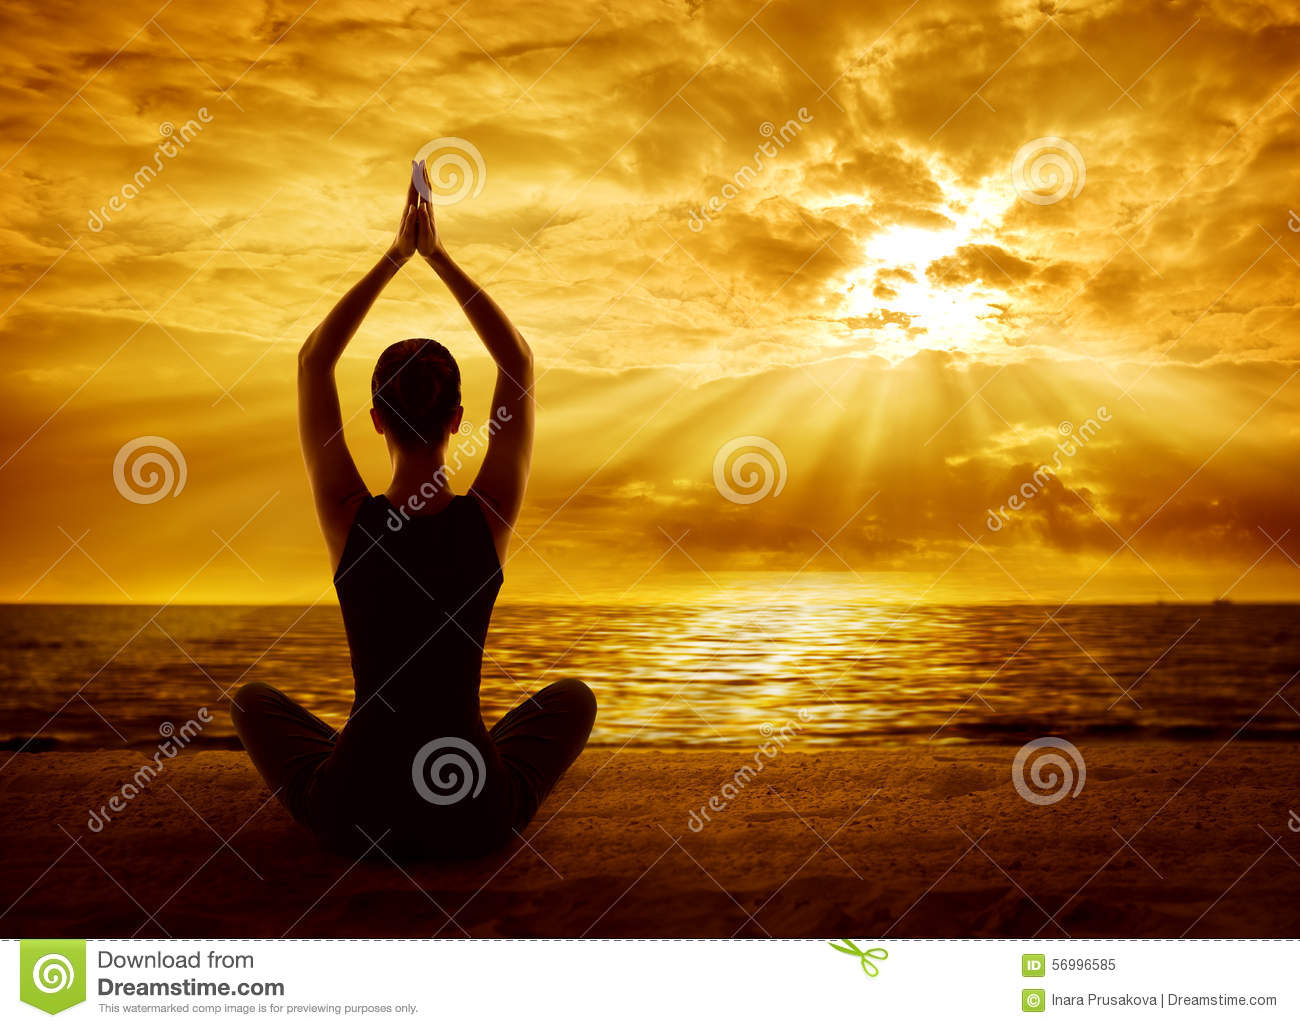 Yoga Meditation Concept Woman Silhouette Healthy Meditating